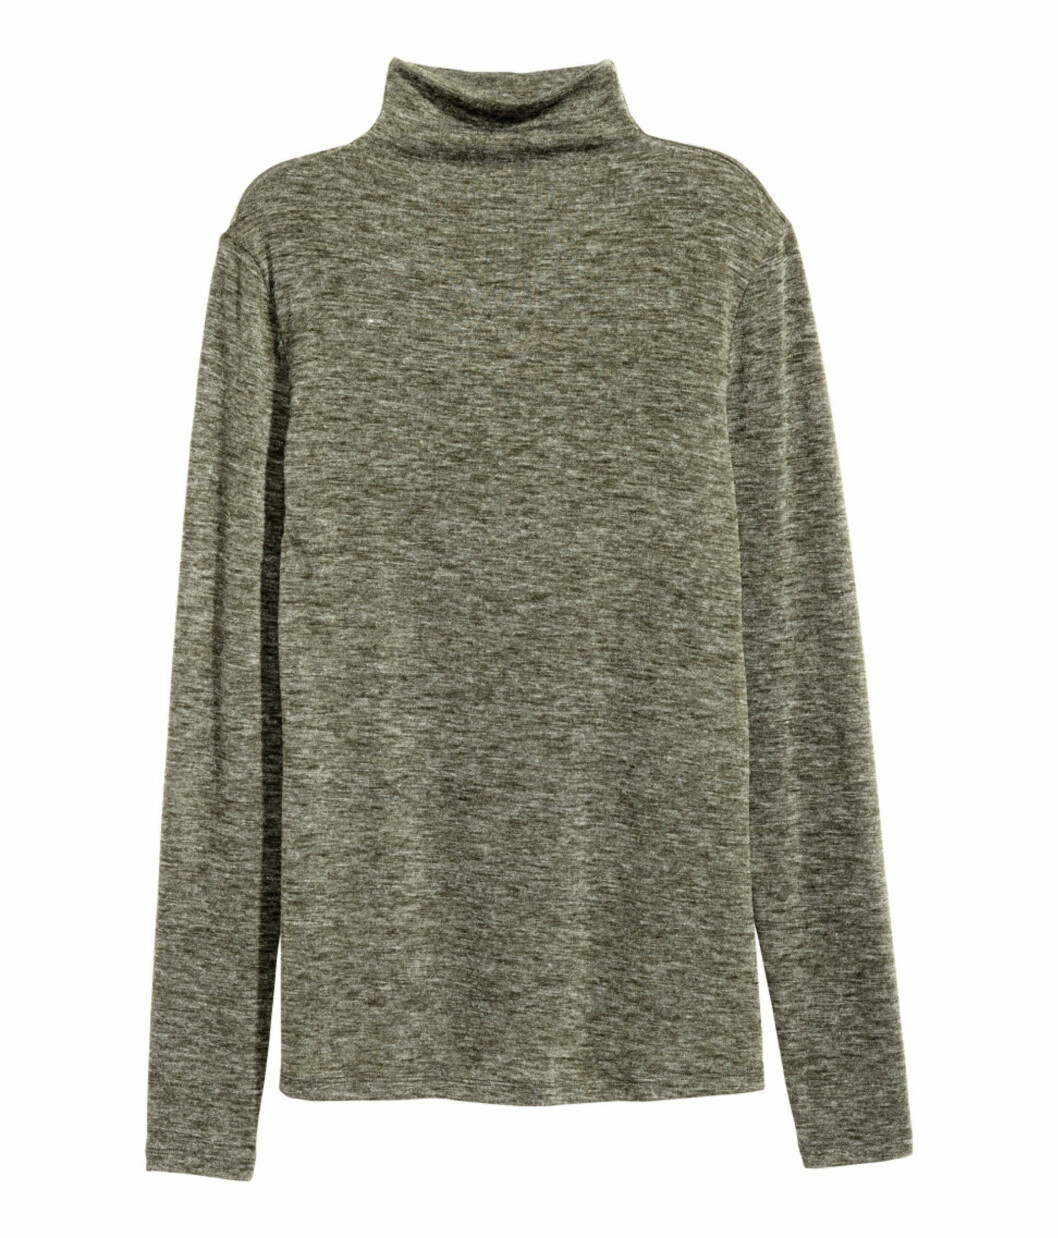 <strong>Pologenser fra H&M | kr 149 | http:</strong>//www.hm.com/no/product/55797?article=55797-D